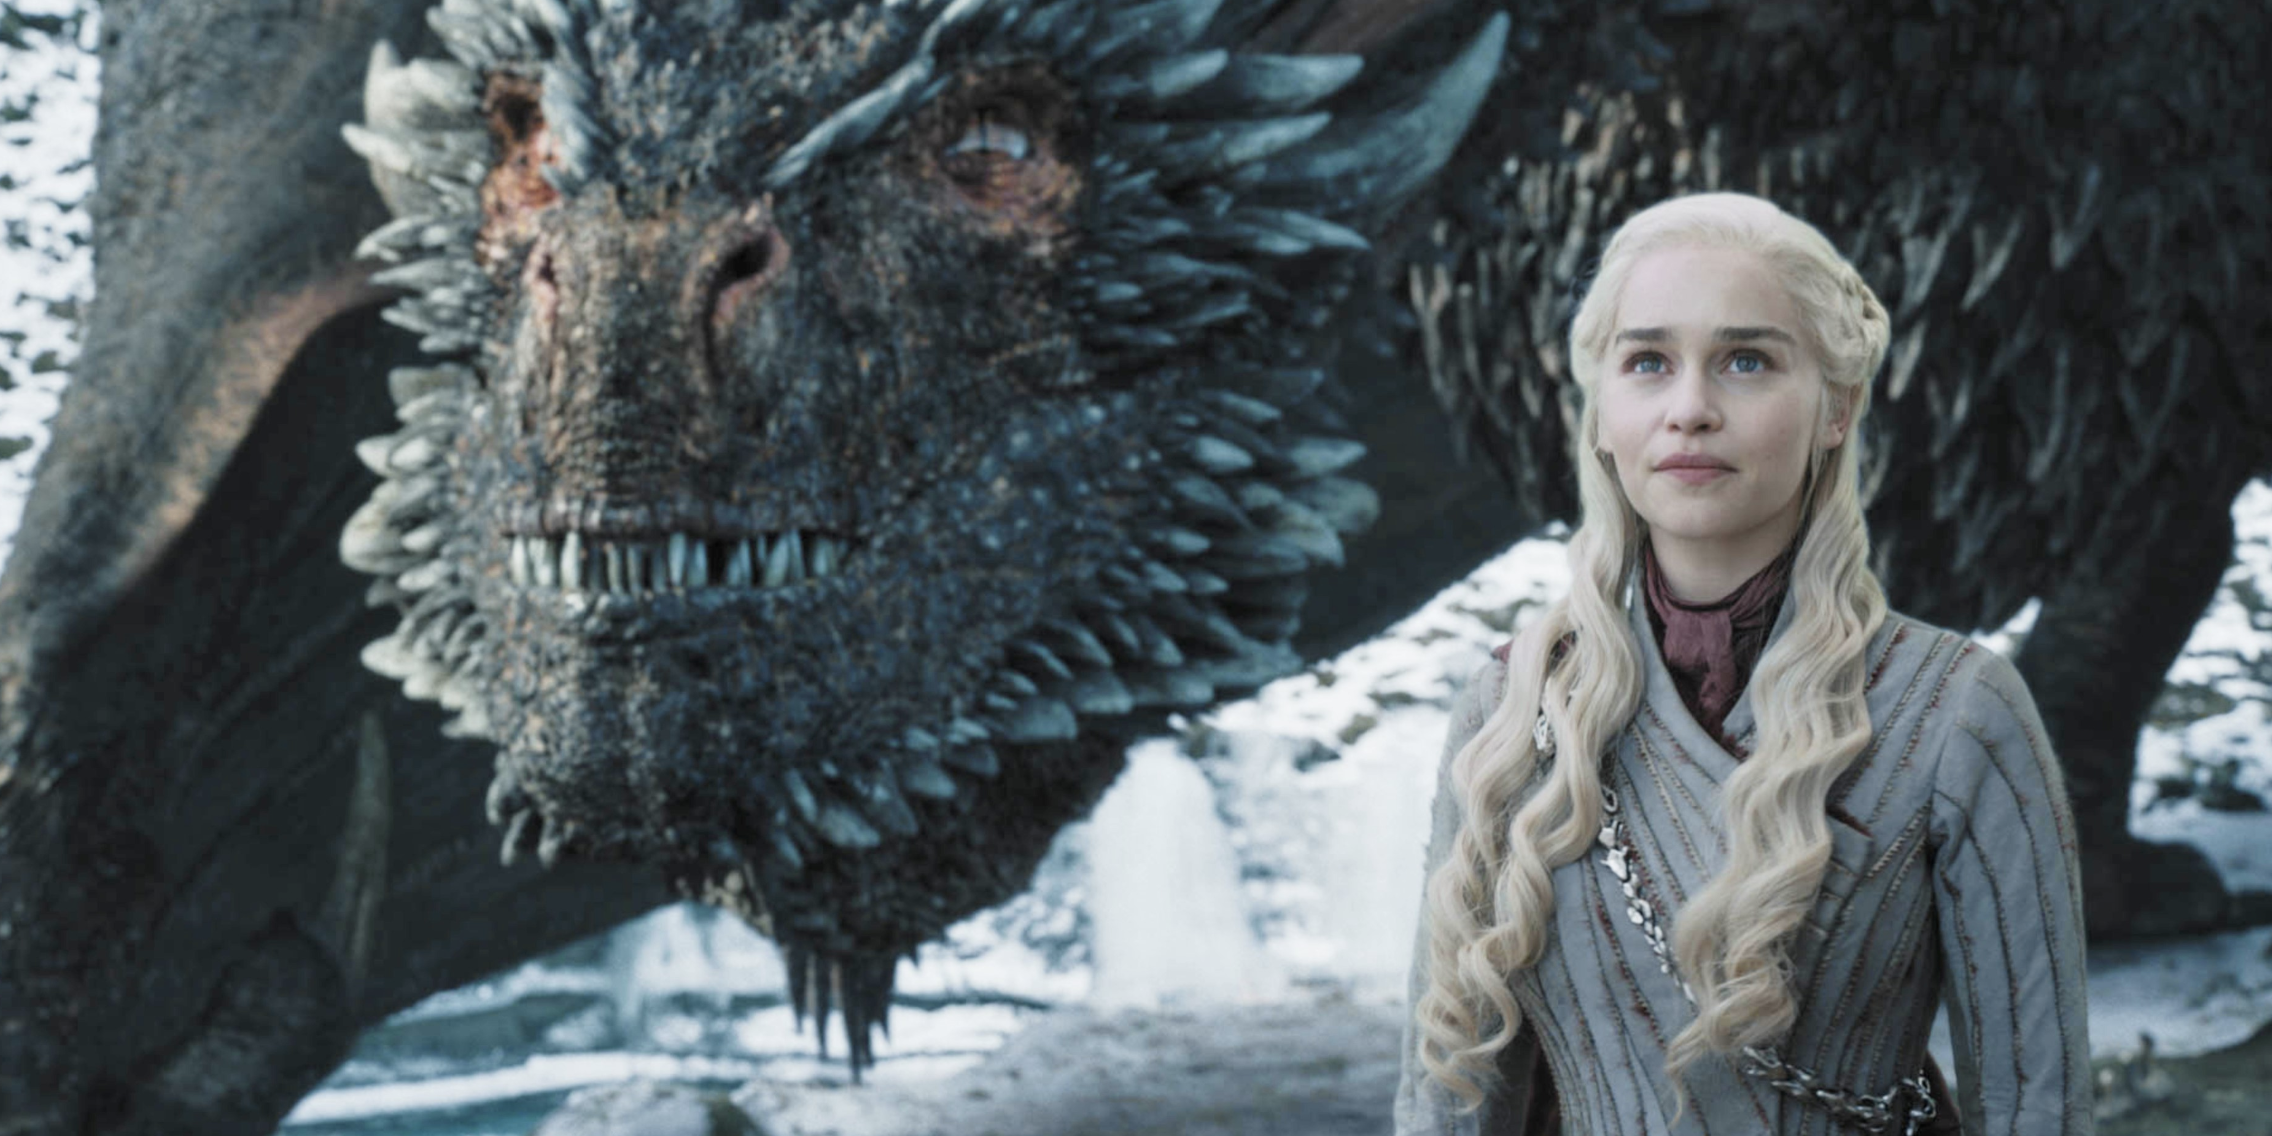 Game of Thrones season 8, episode 4: Daenerys Targaryen and Drogon